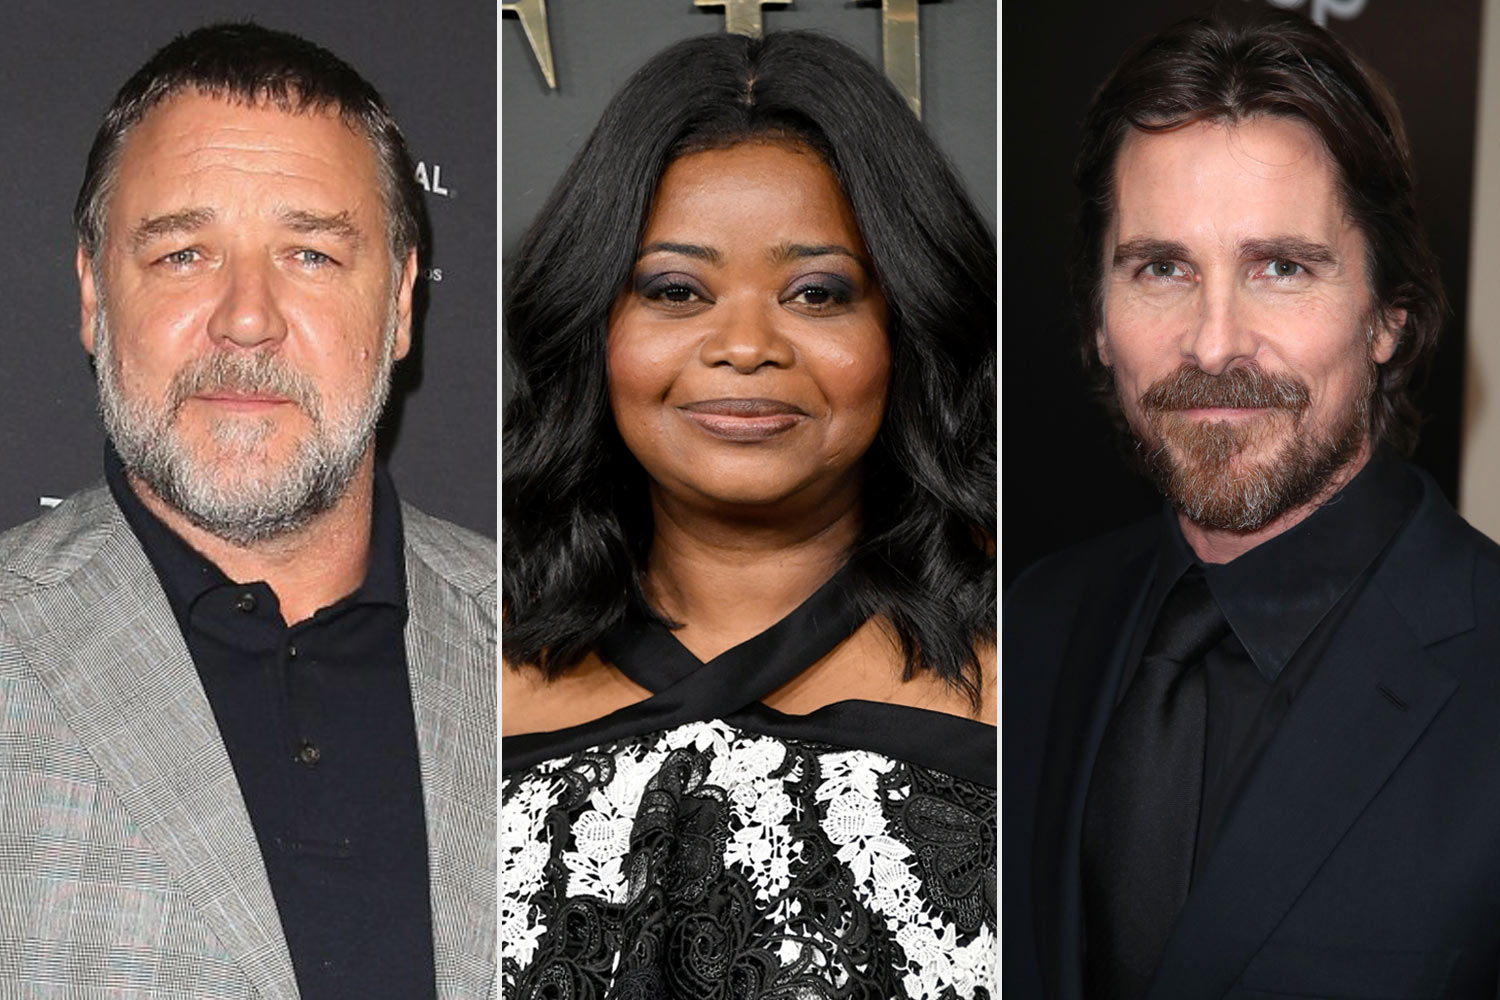 Russell Crowe, Octavia Spencer and Christian Bale